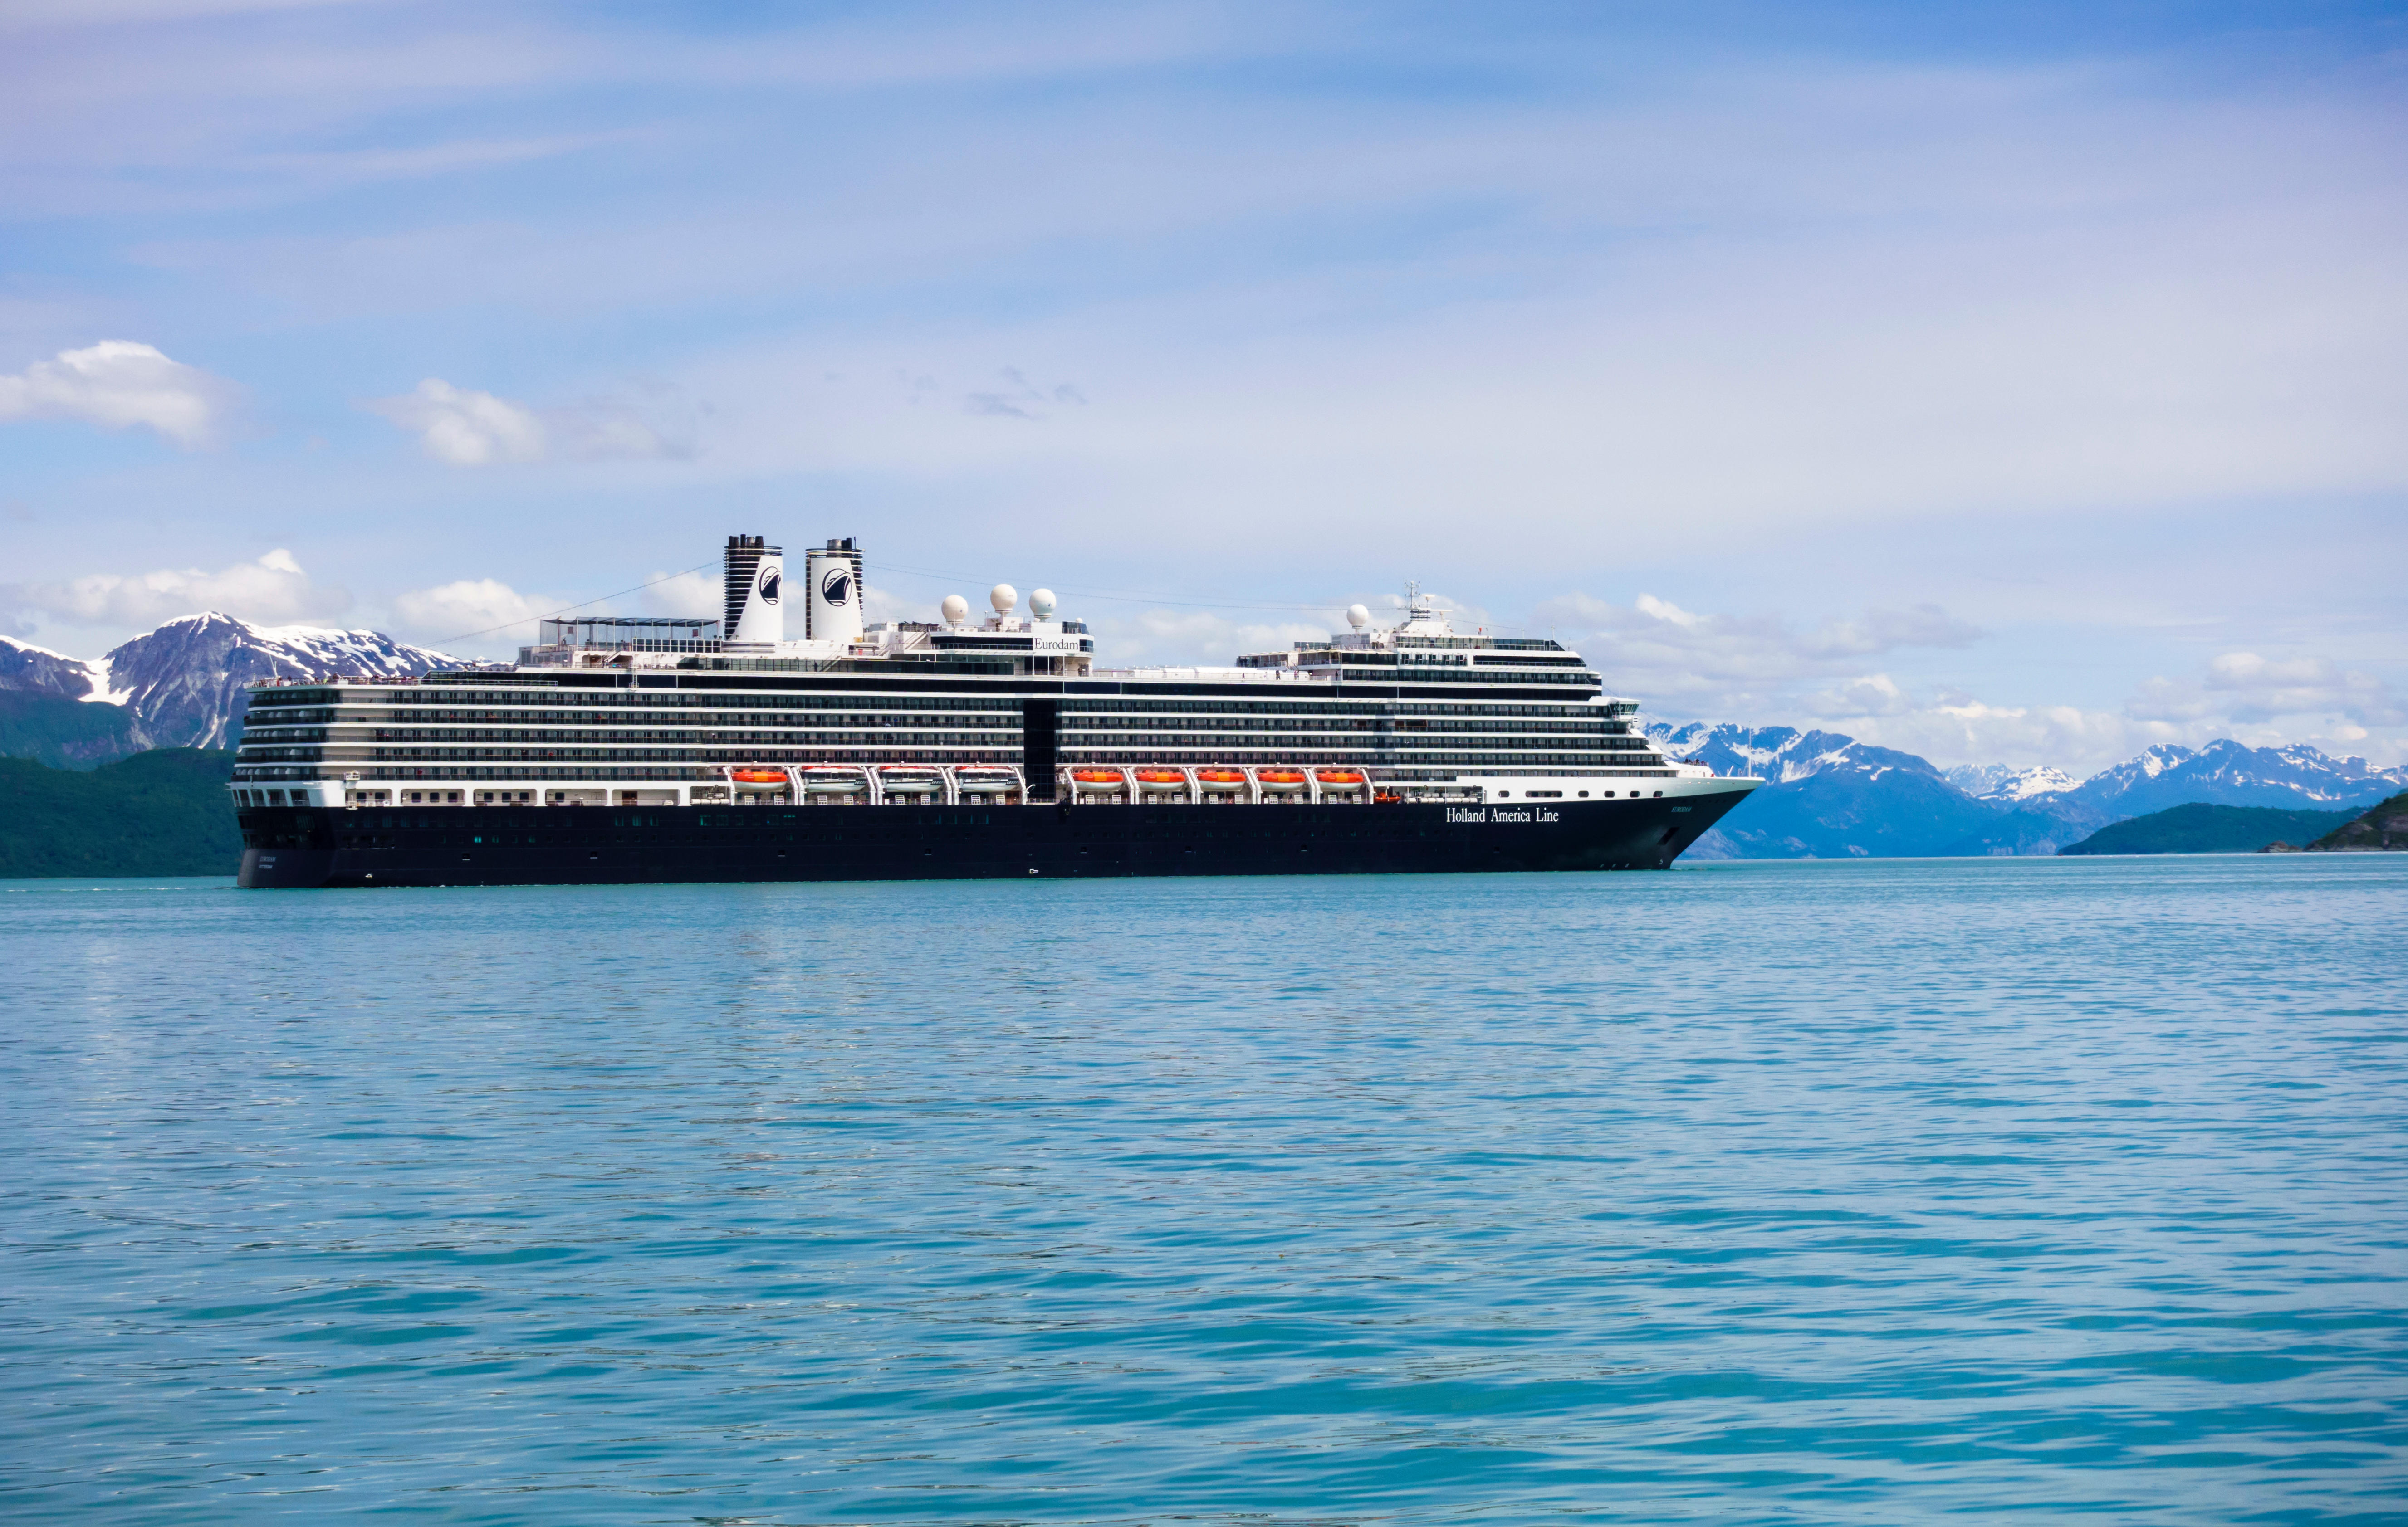 Eight Ways To Make Sure You Get The Best Deal On A Cruise The Washington Post